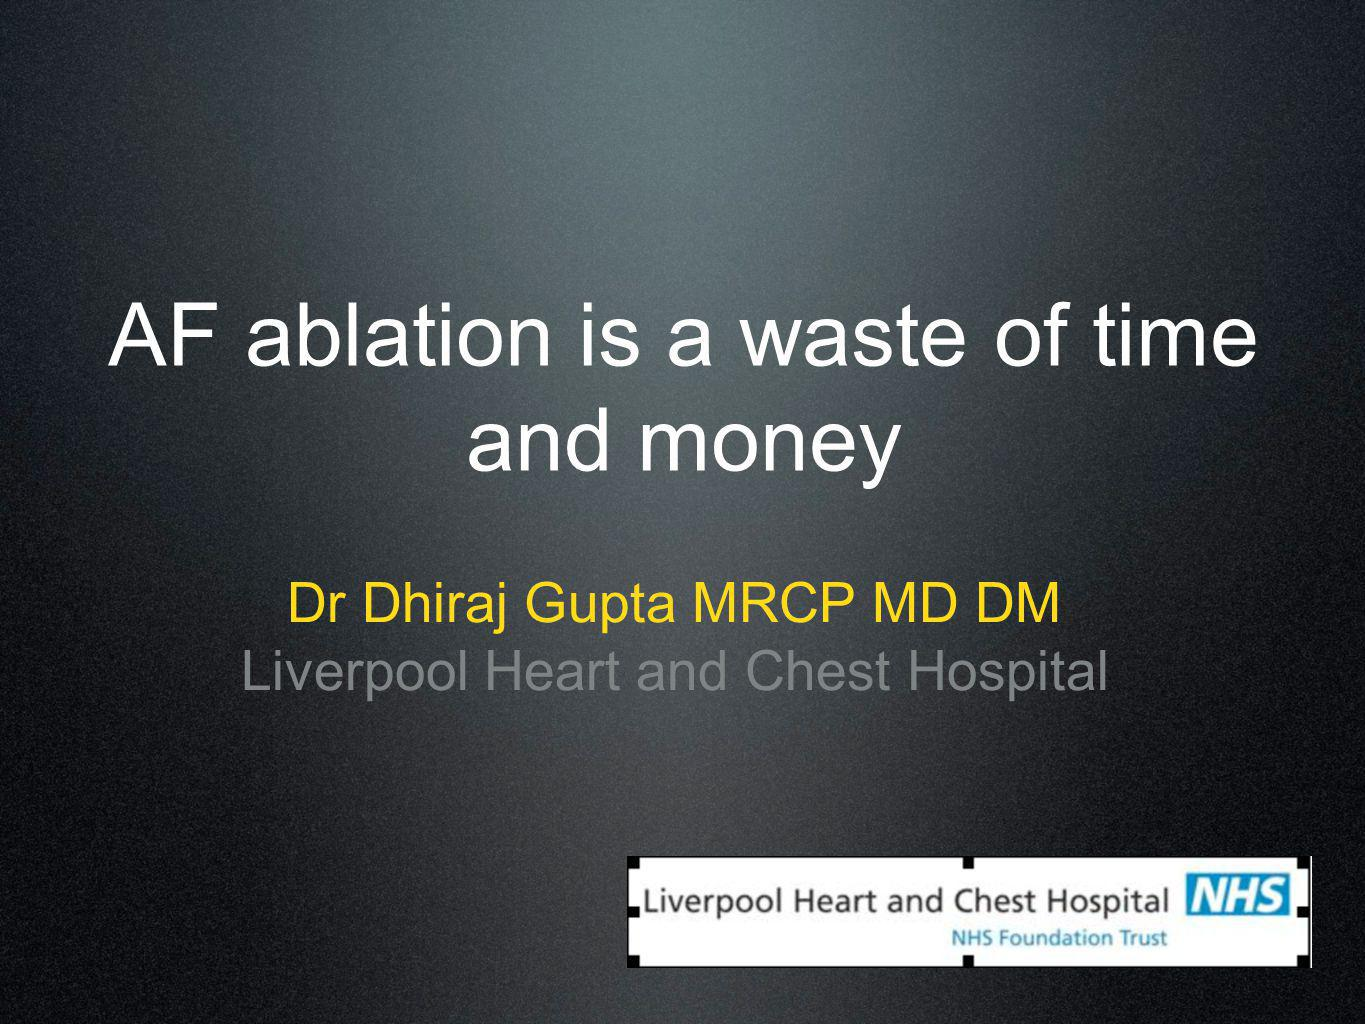 AF ablation is a waste of time and money Dr Dhiraj Gupta MRCP MD DM Liverpool Heart and Chest Hospital